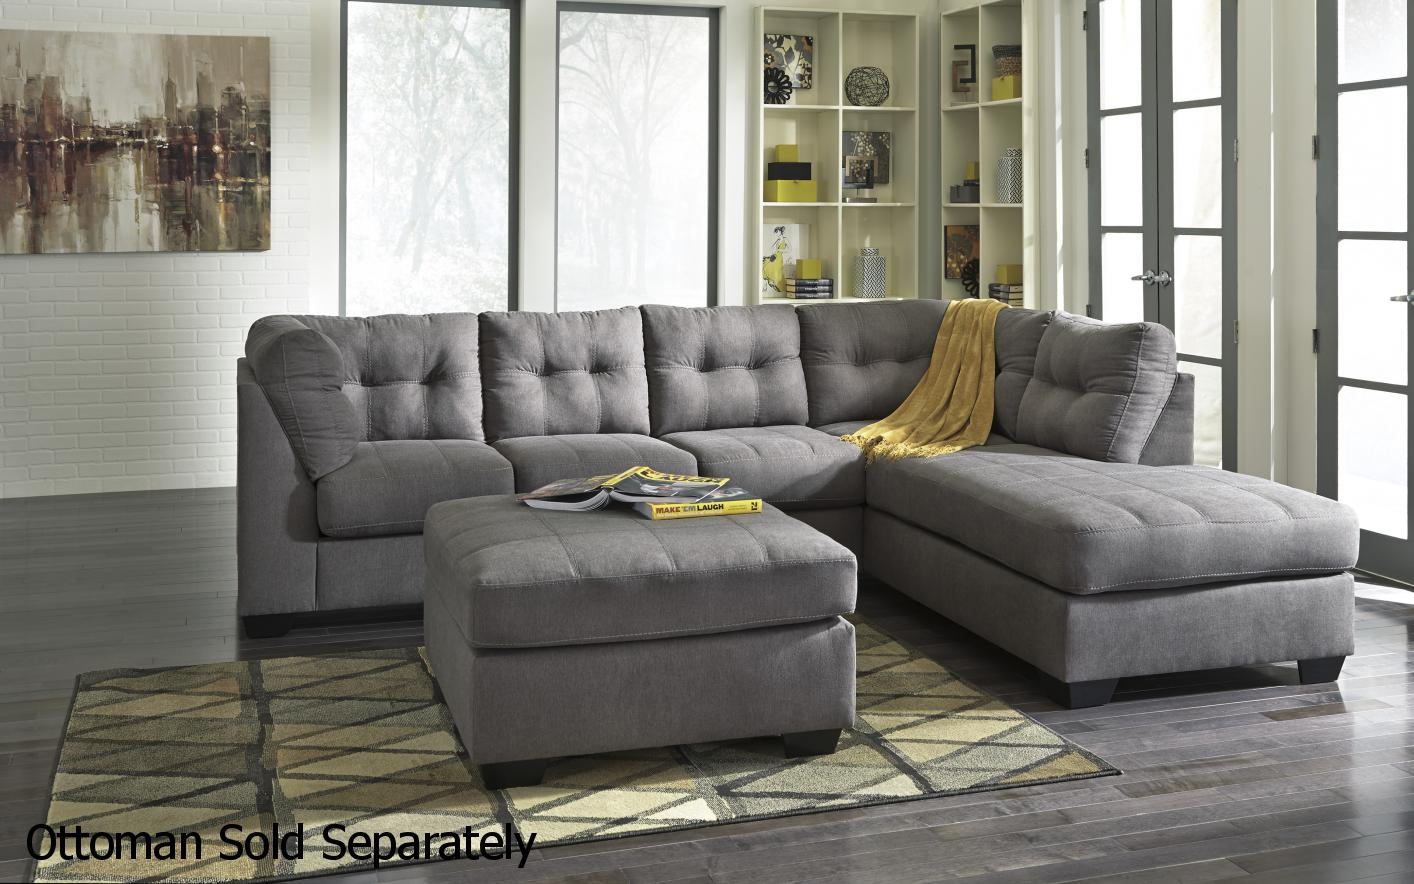 Ashley 4520017 4520066 Grey Fabric Sectional Sofa Steal  : grey fabric sectional sofa 124 from www.stealasofa.com size 1414 x 884 jpeg 169kB